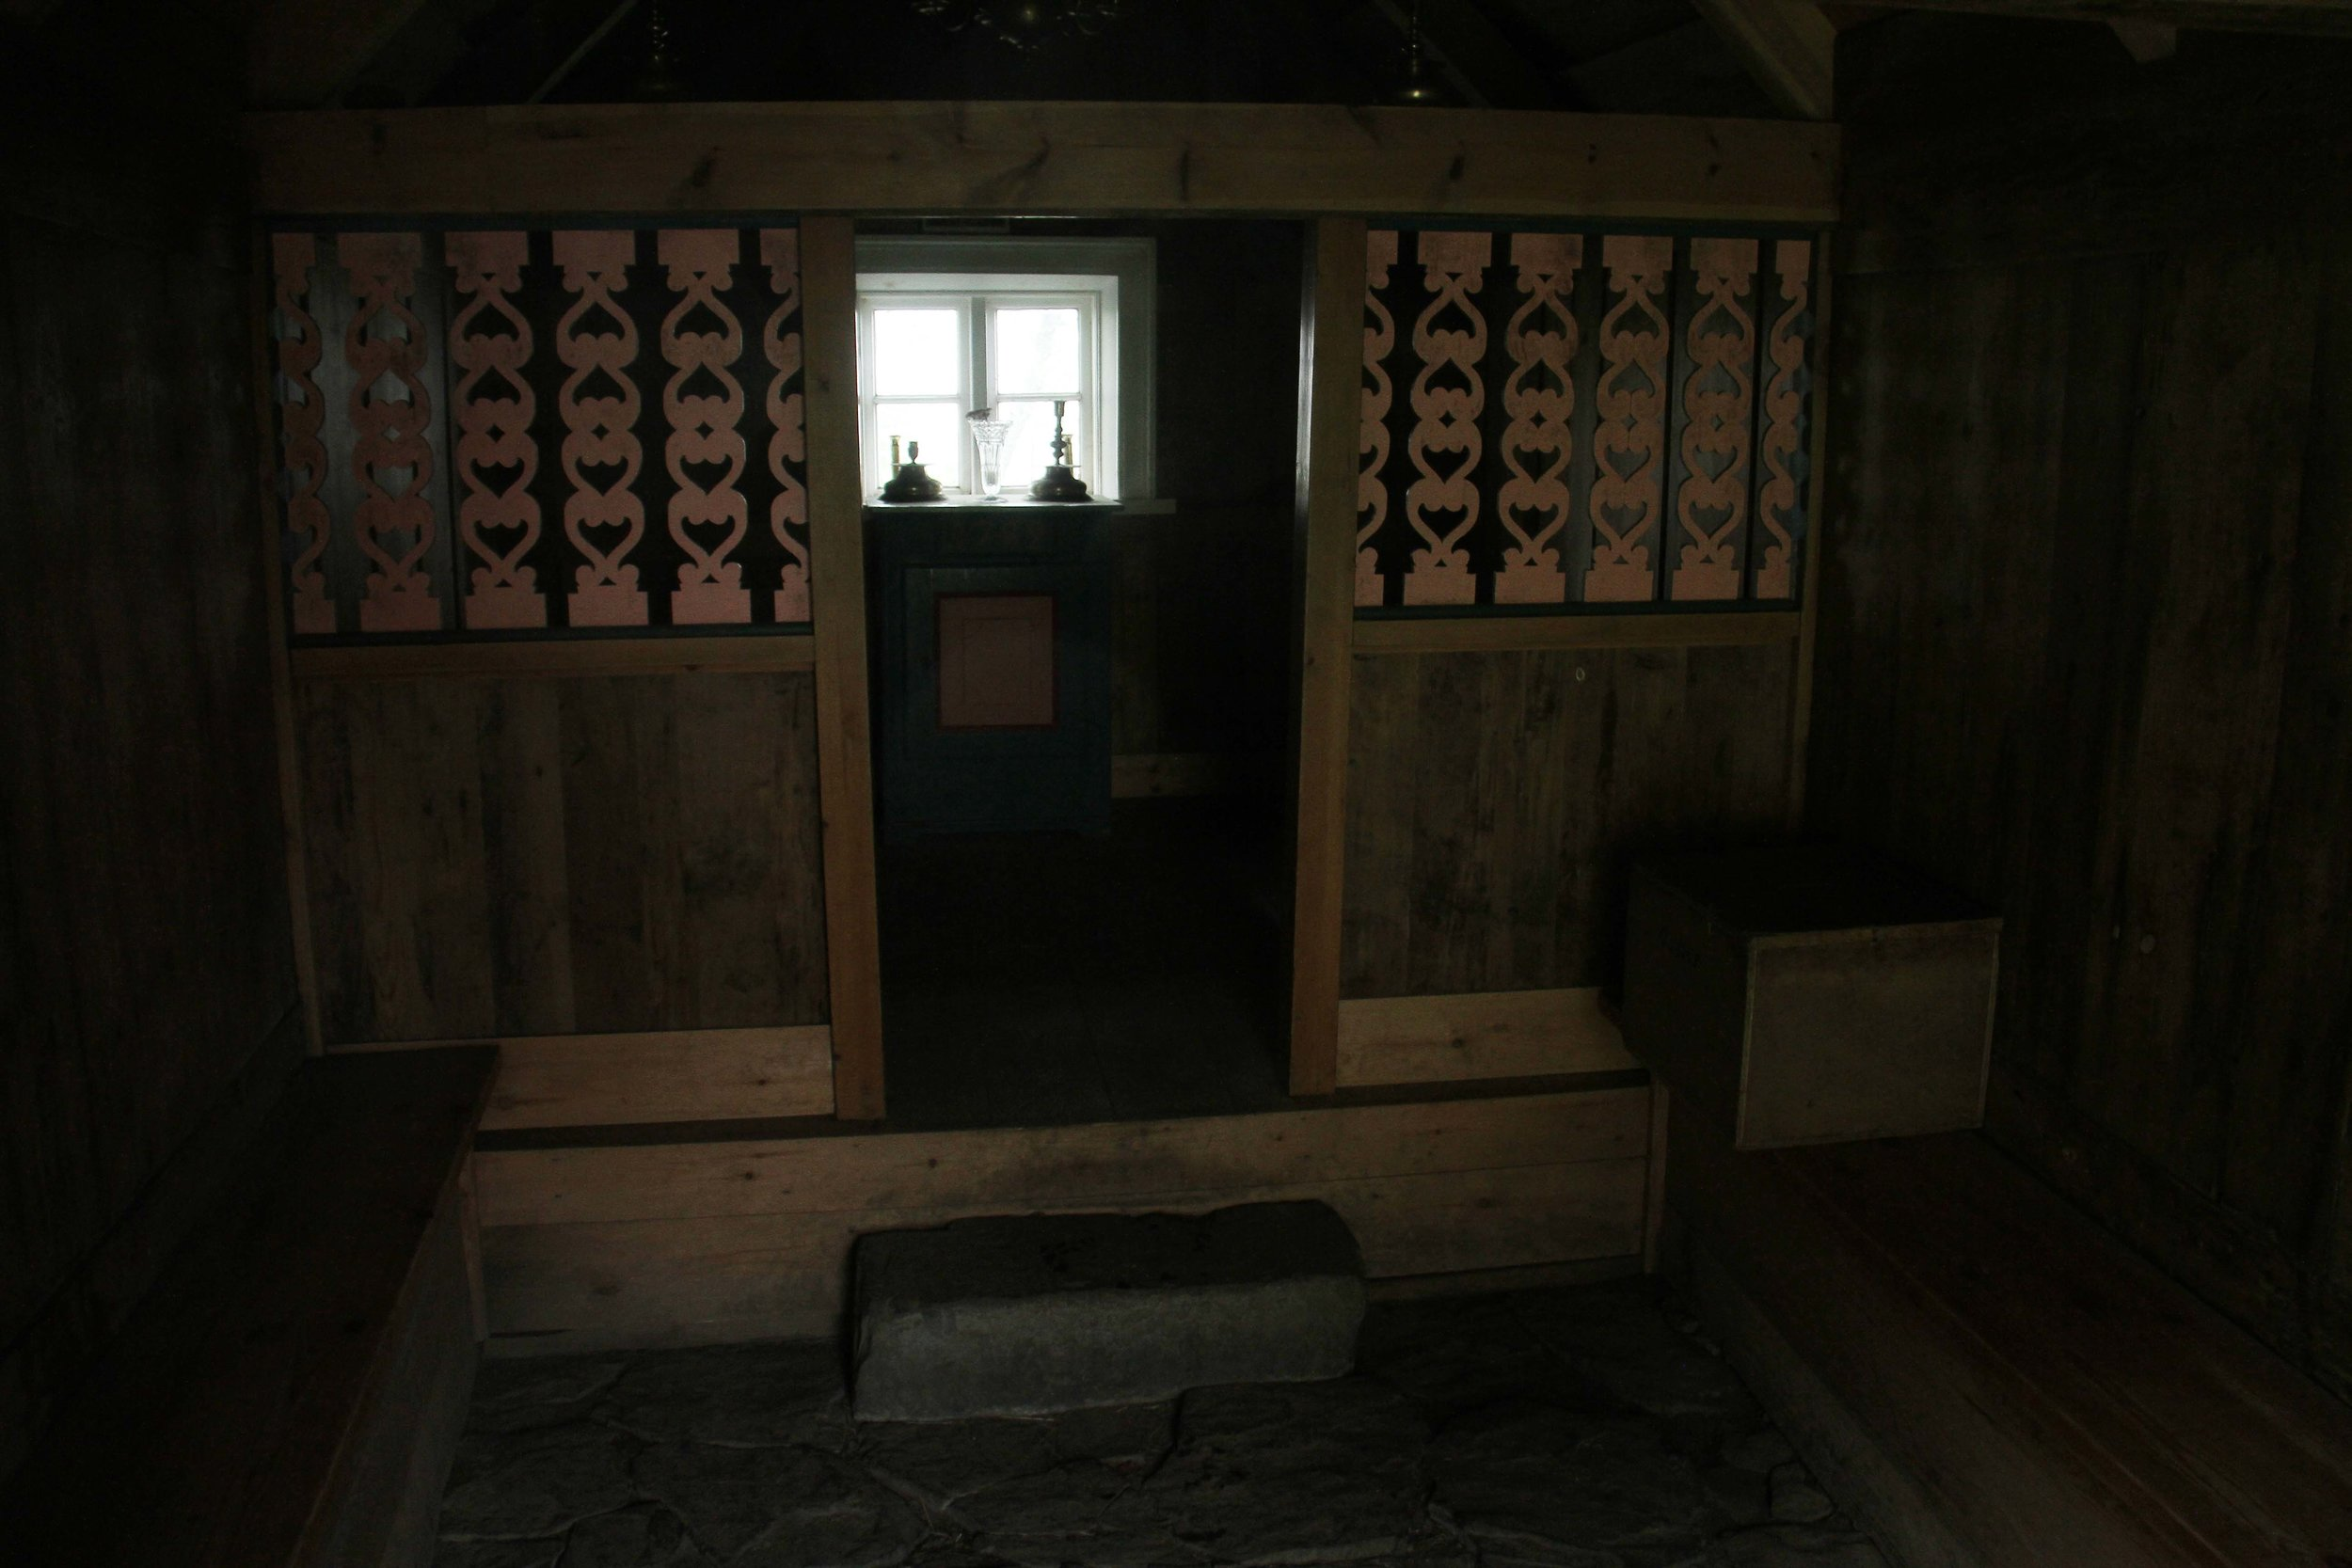 Nupsstadur church interior